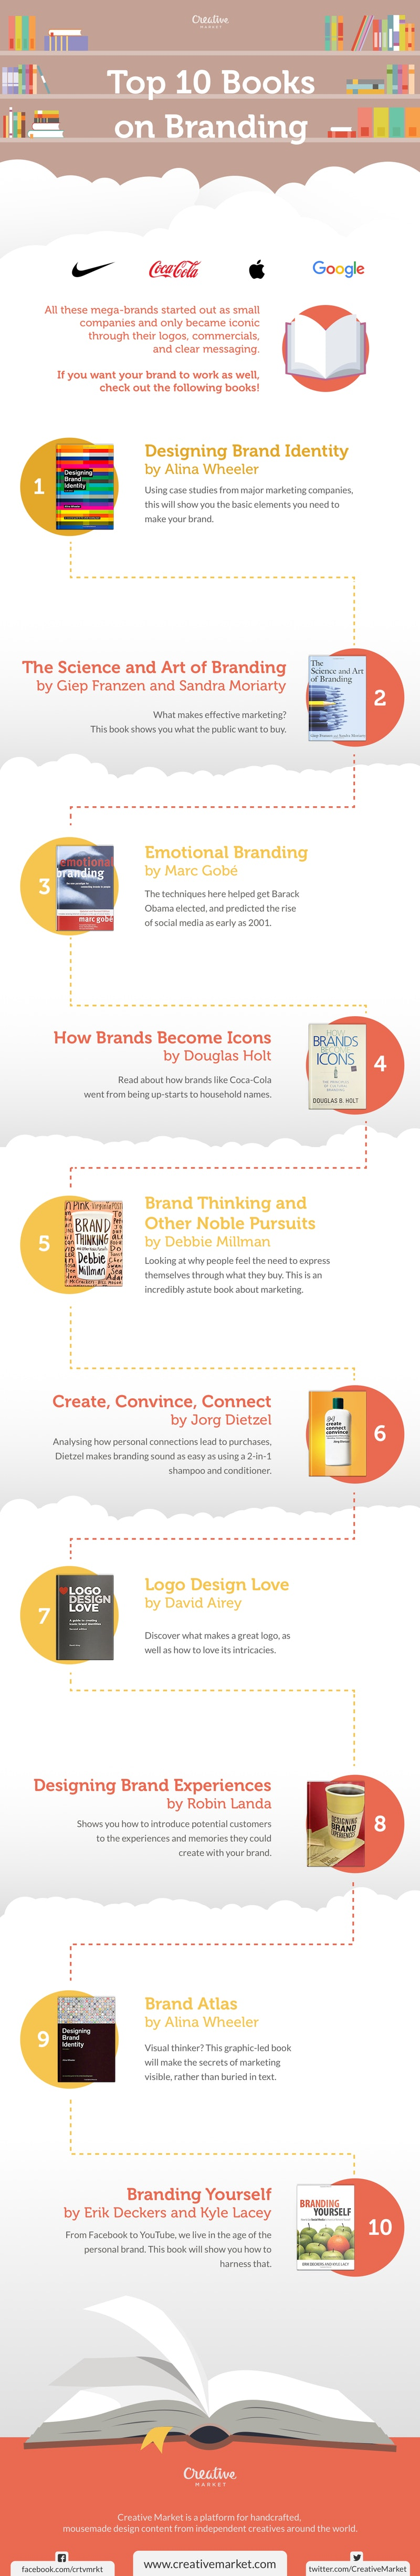 Best Books For Branding - Infographic